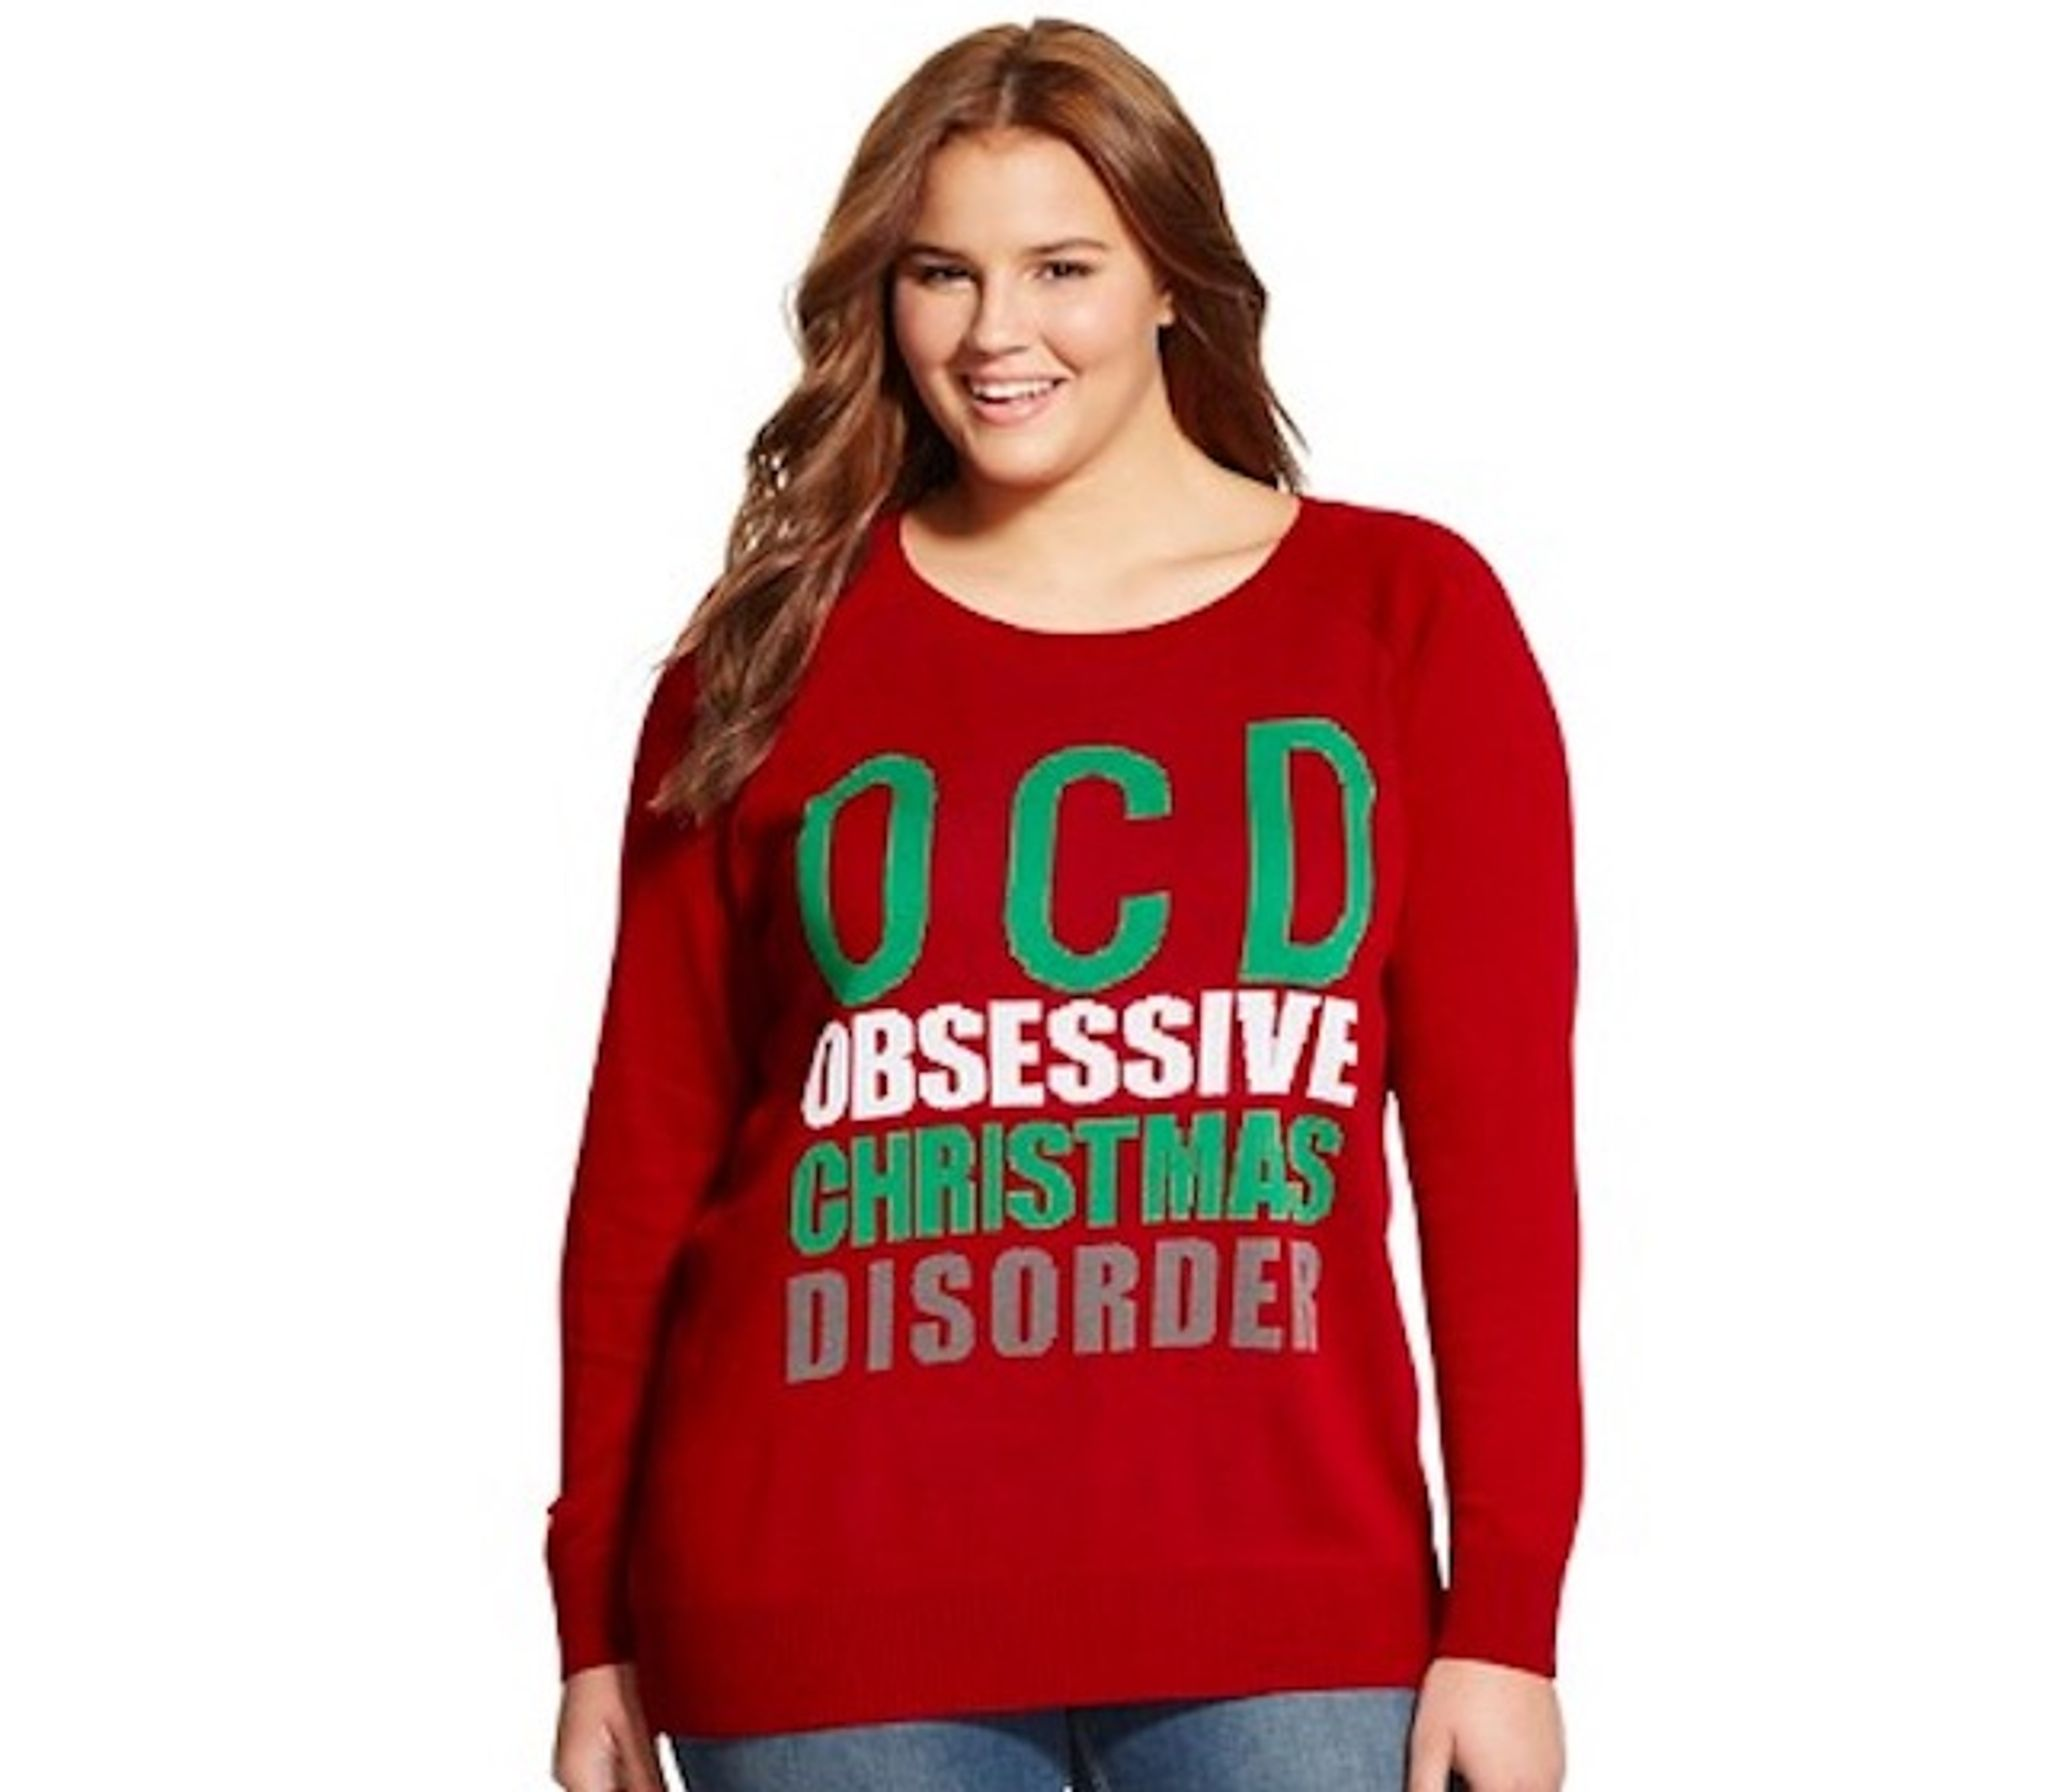 Target \'Obsessive Christmas Disorder\' sweater upsets OCD sufferers ...